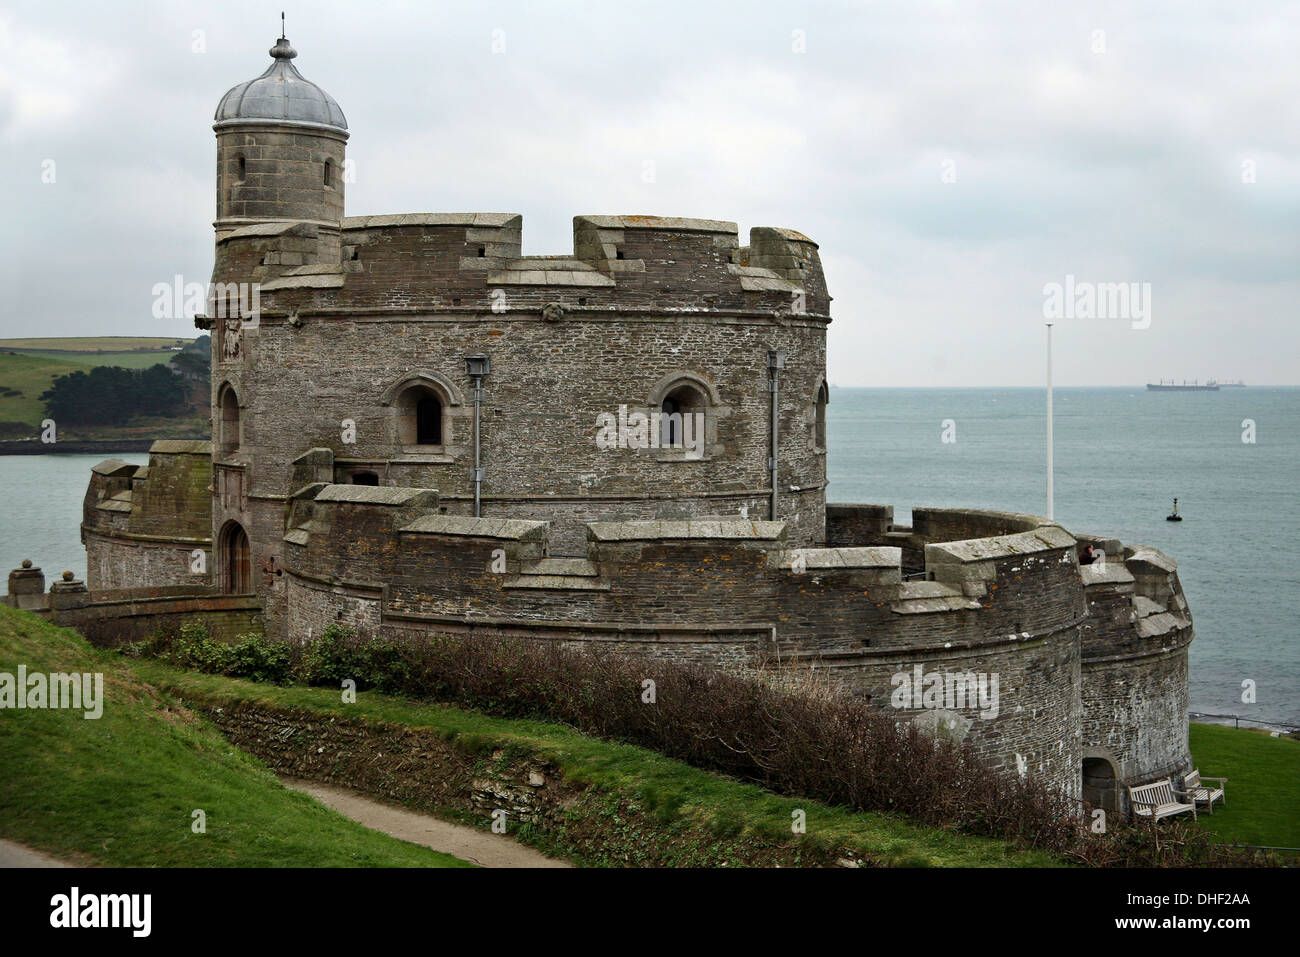 St Mawes Castle in Cornwall - Stock Image